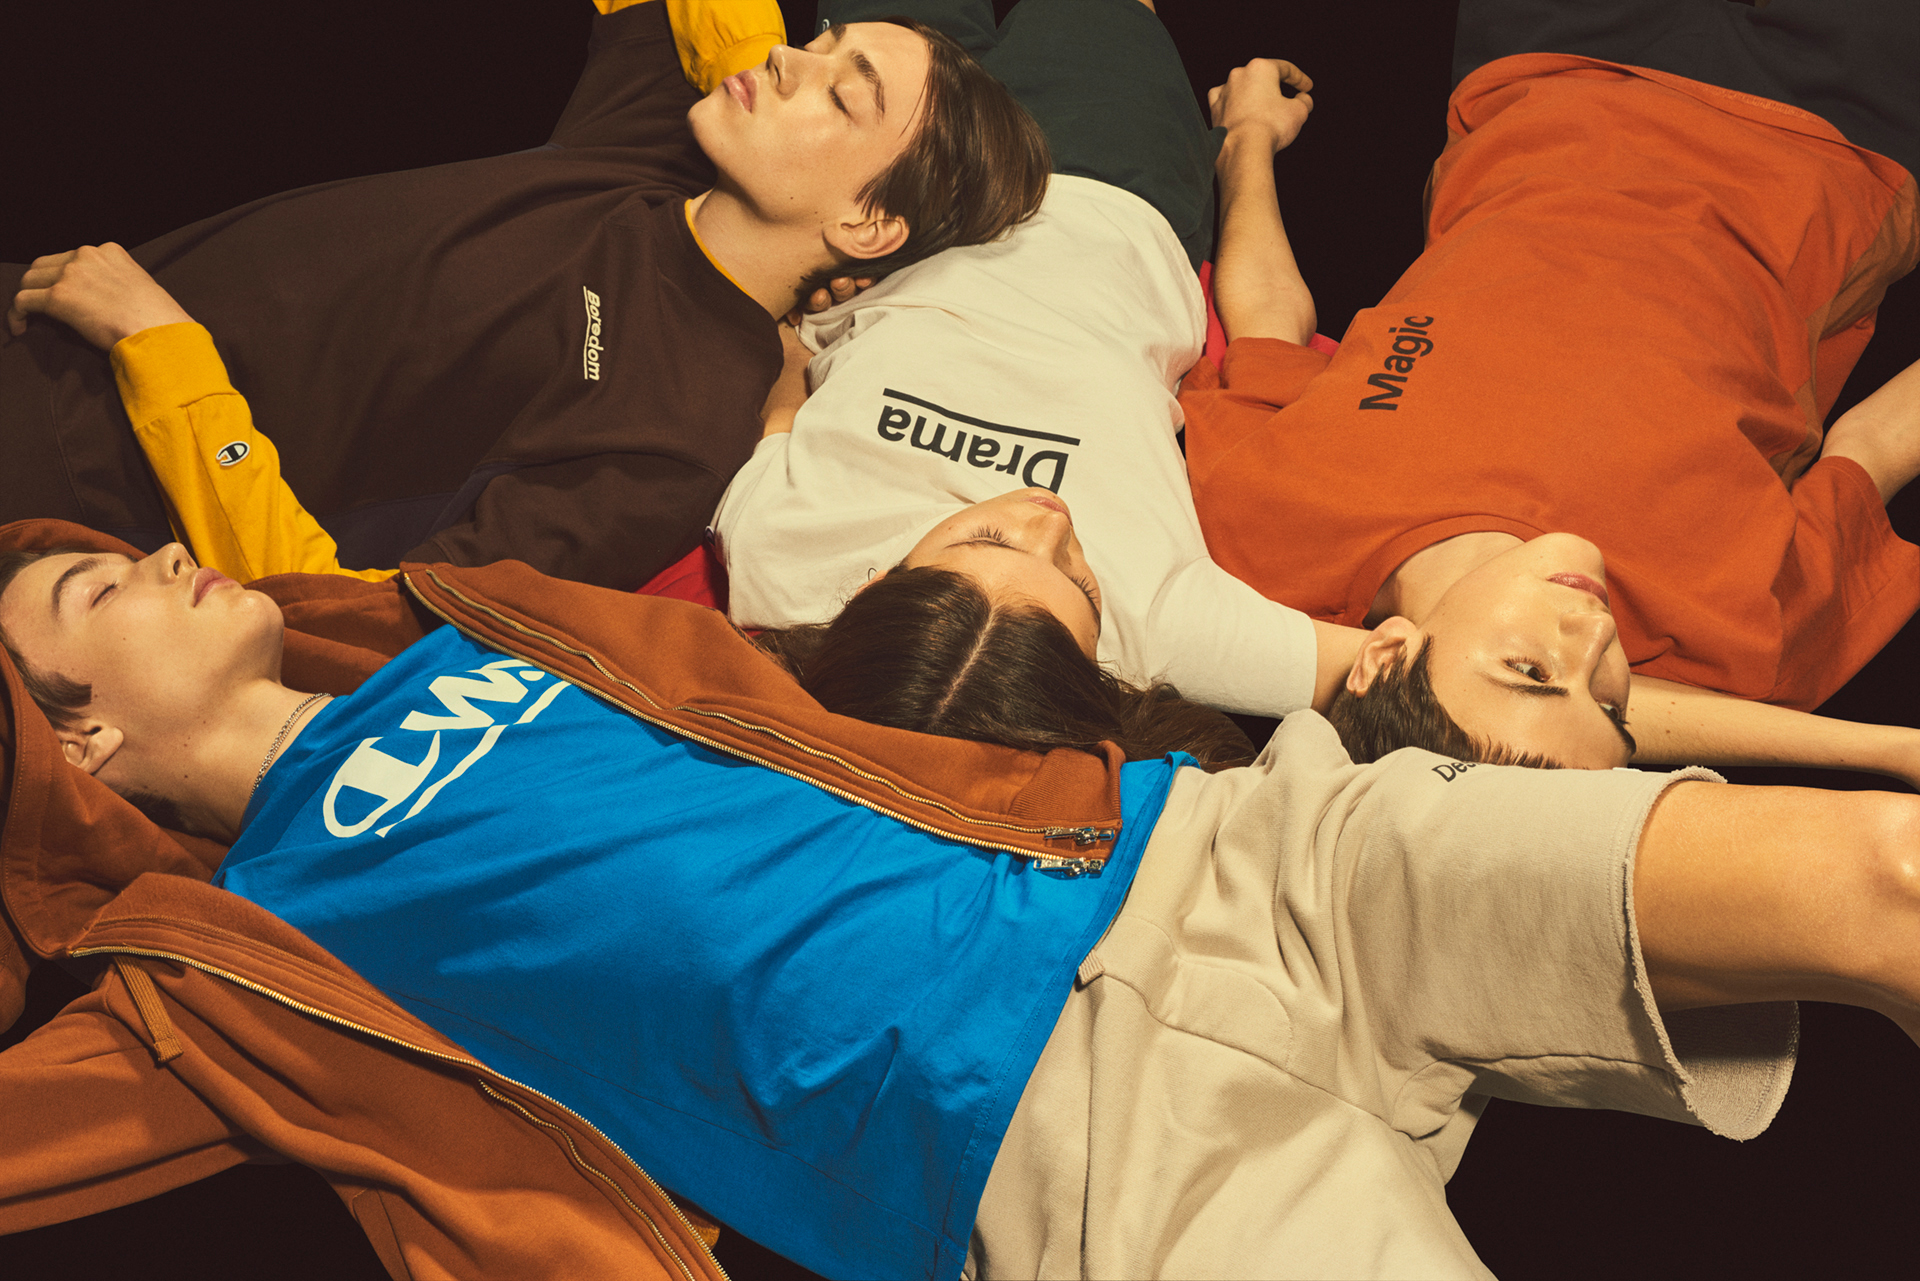 Champion by Wood Wood Spring/Summer 2018 Campaign